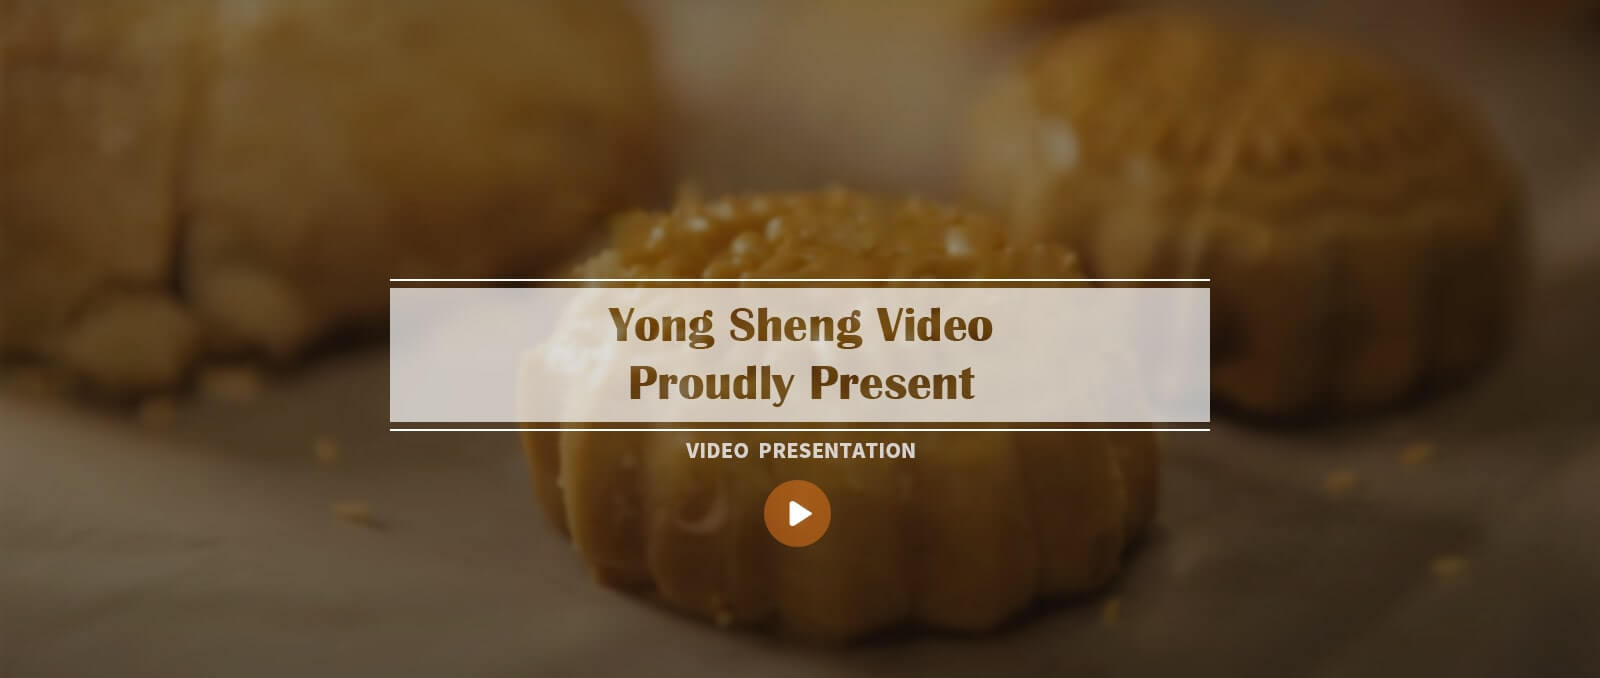 Yong Sheng Video Banner